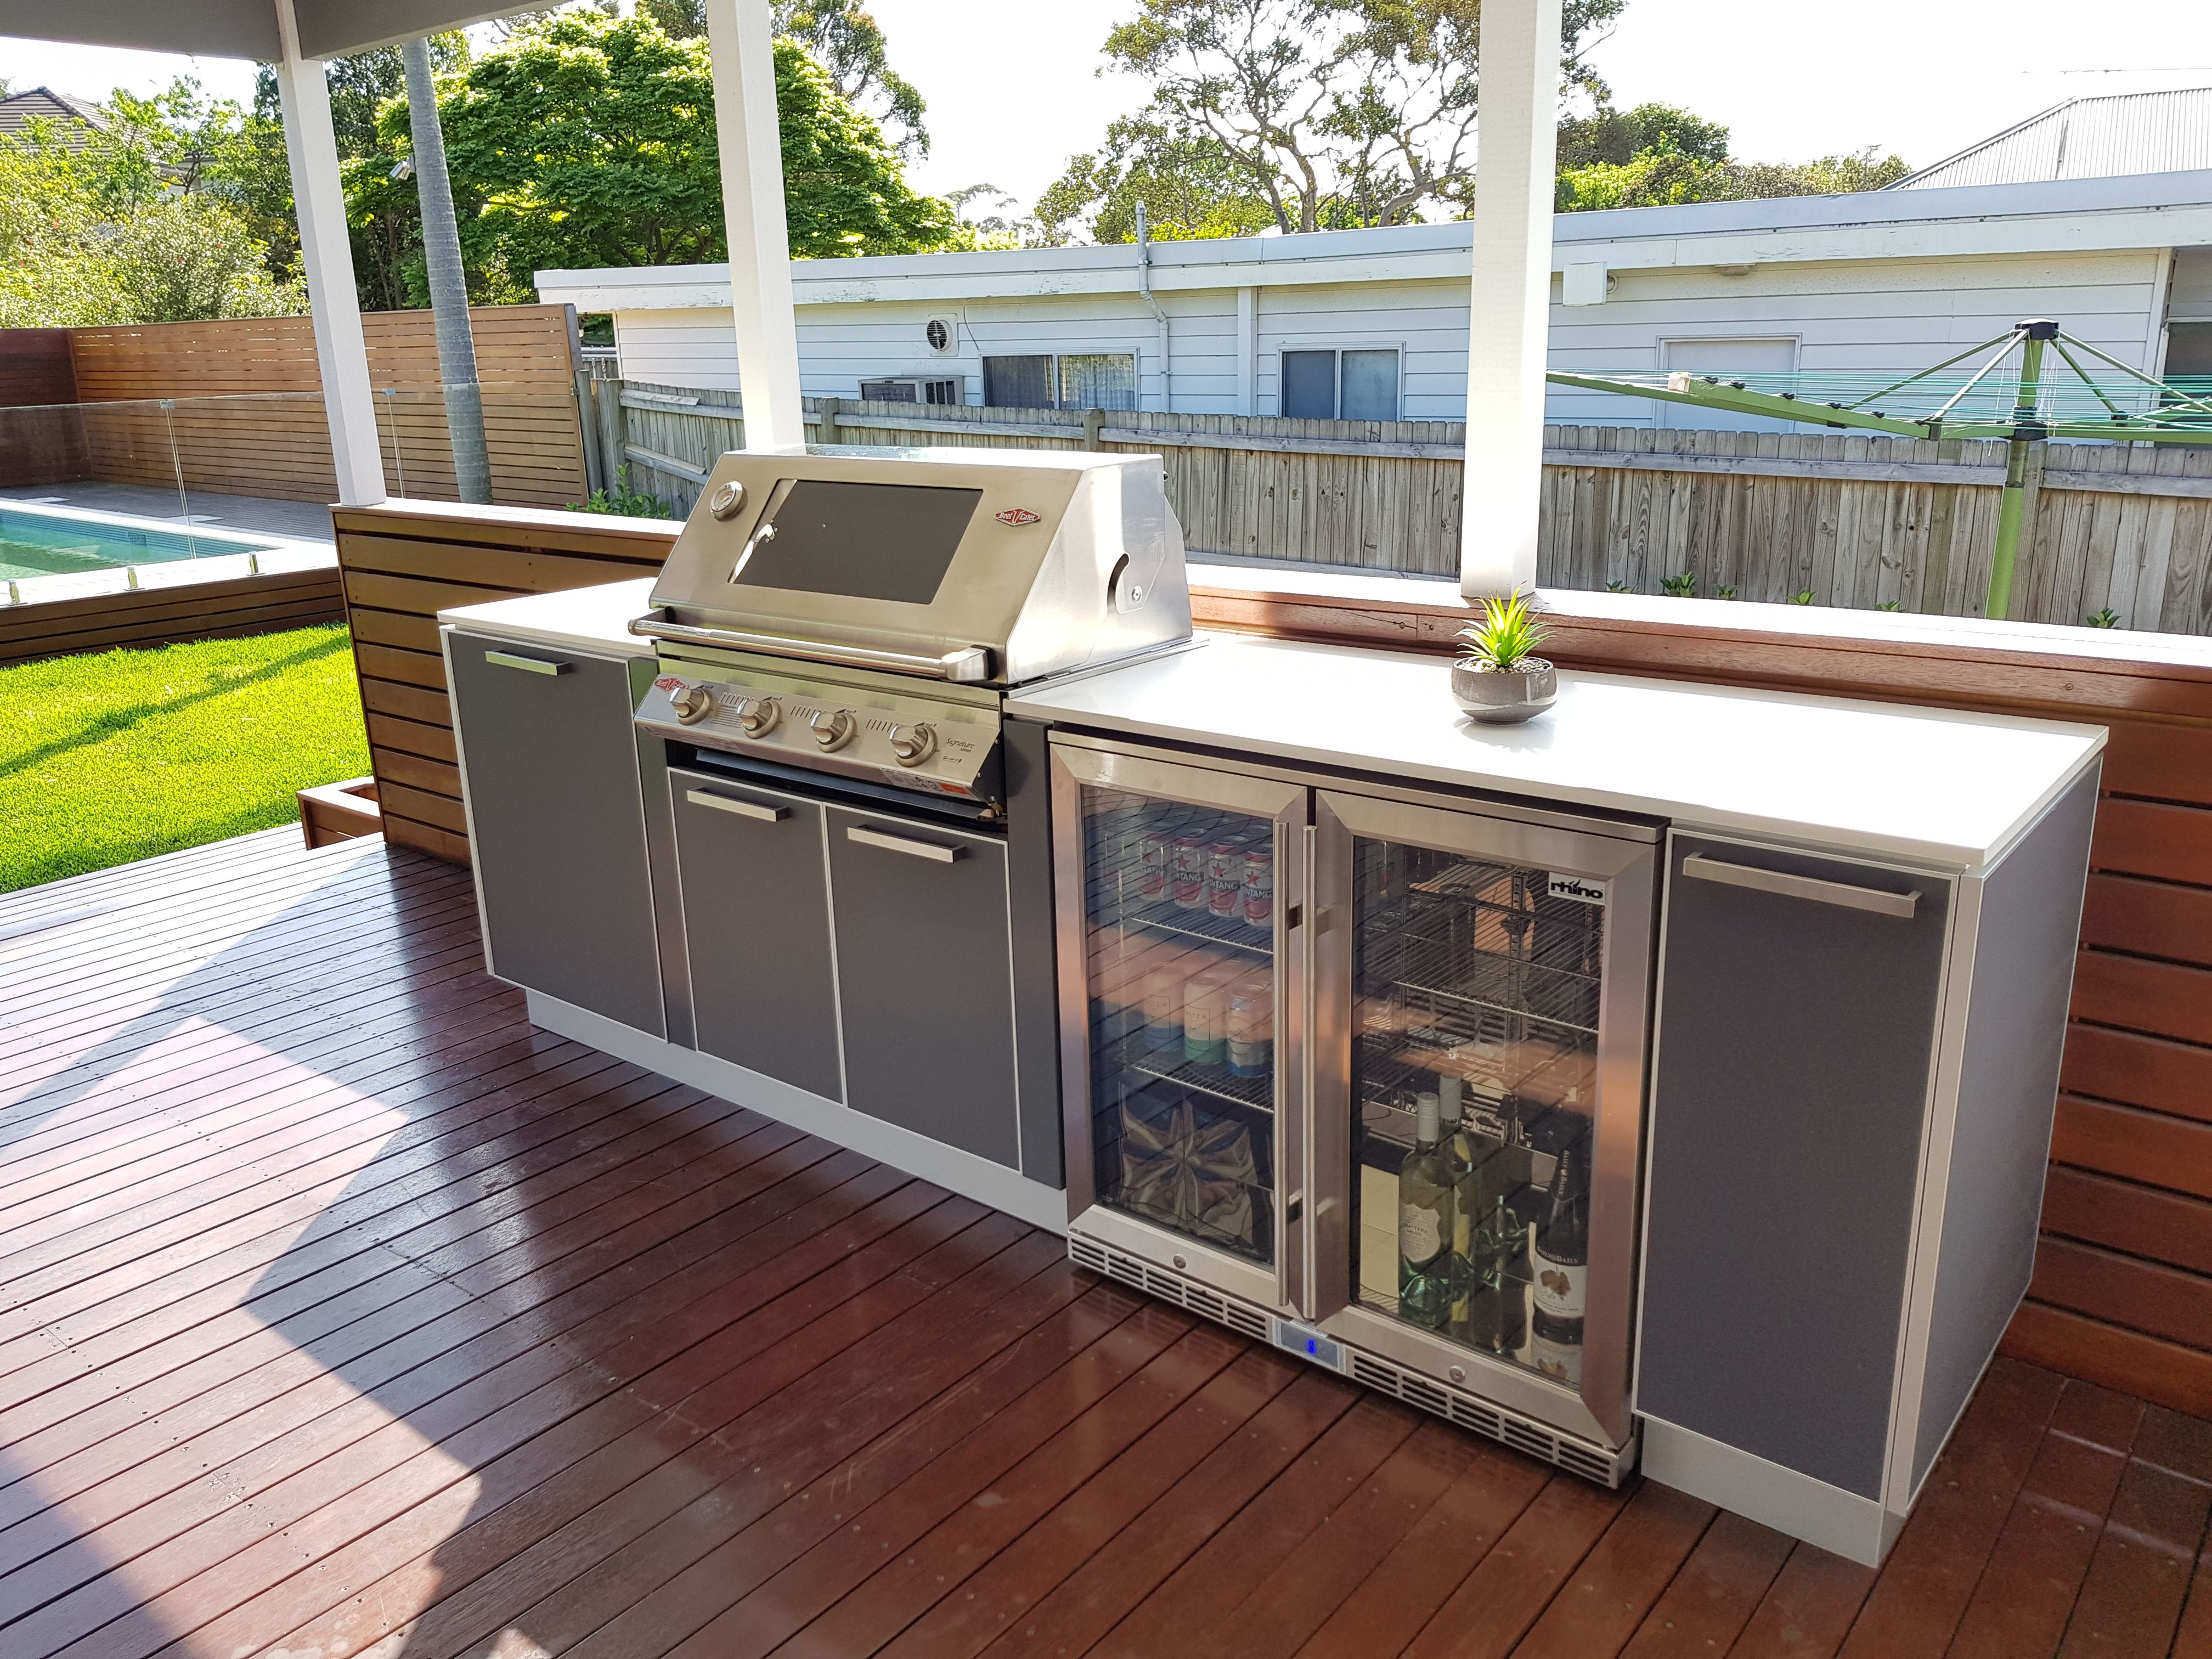 Another DIY Outdoor Kitchen model from Kastell Kitchens